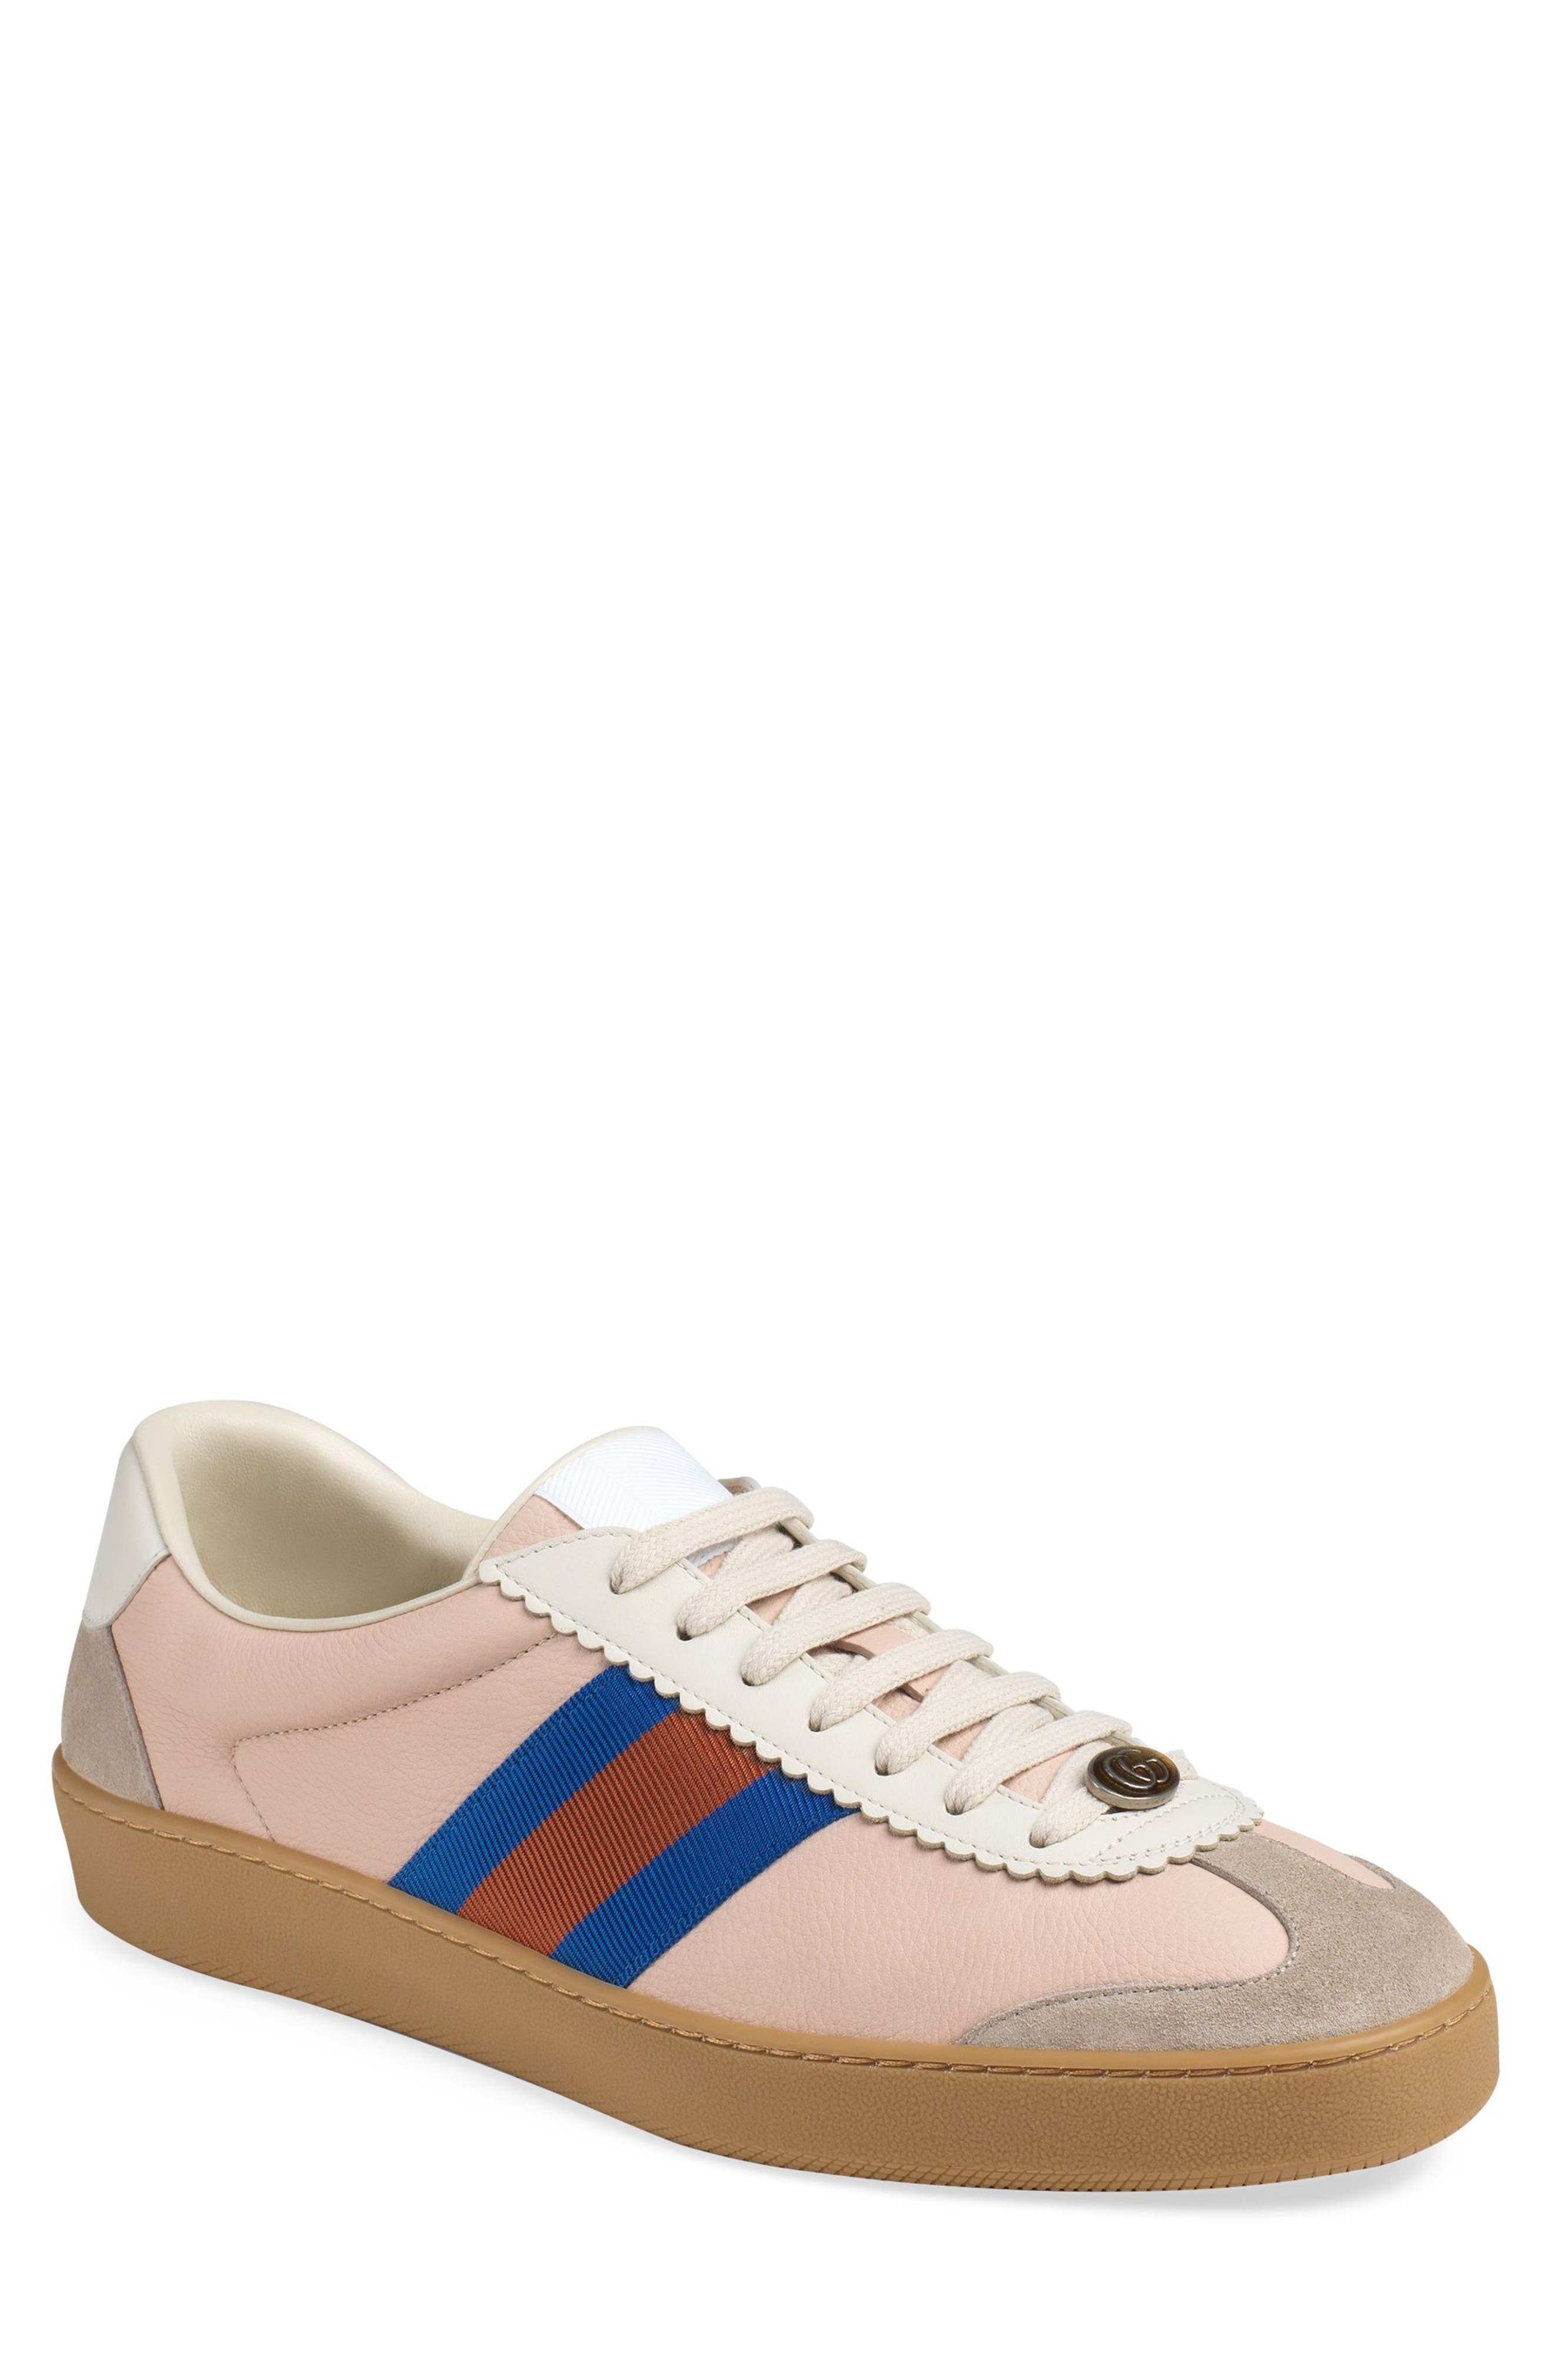 Gucci Web-Striped Leather & Suede Sneakers - Pink Size 6 M In Pink Multi